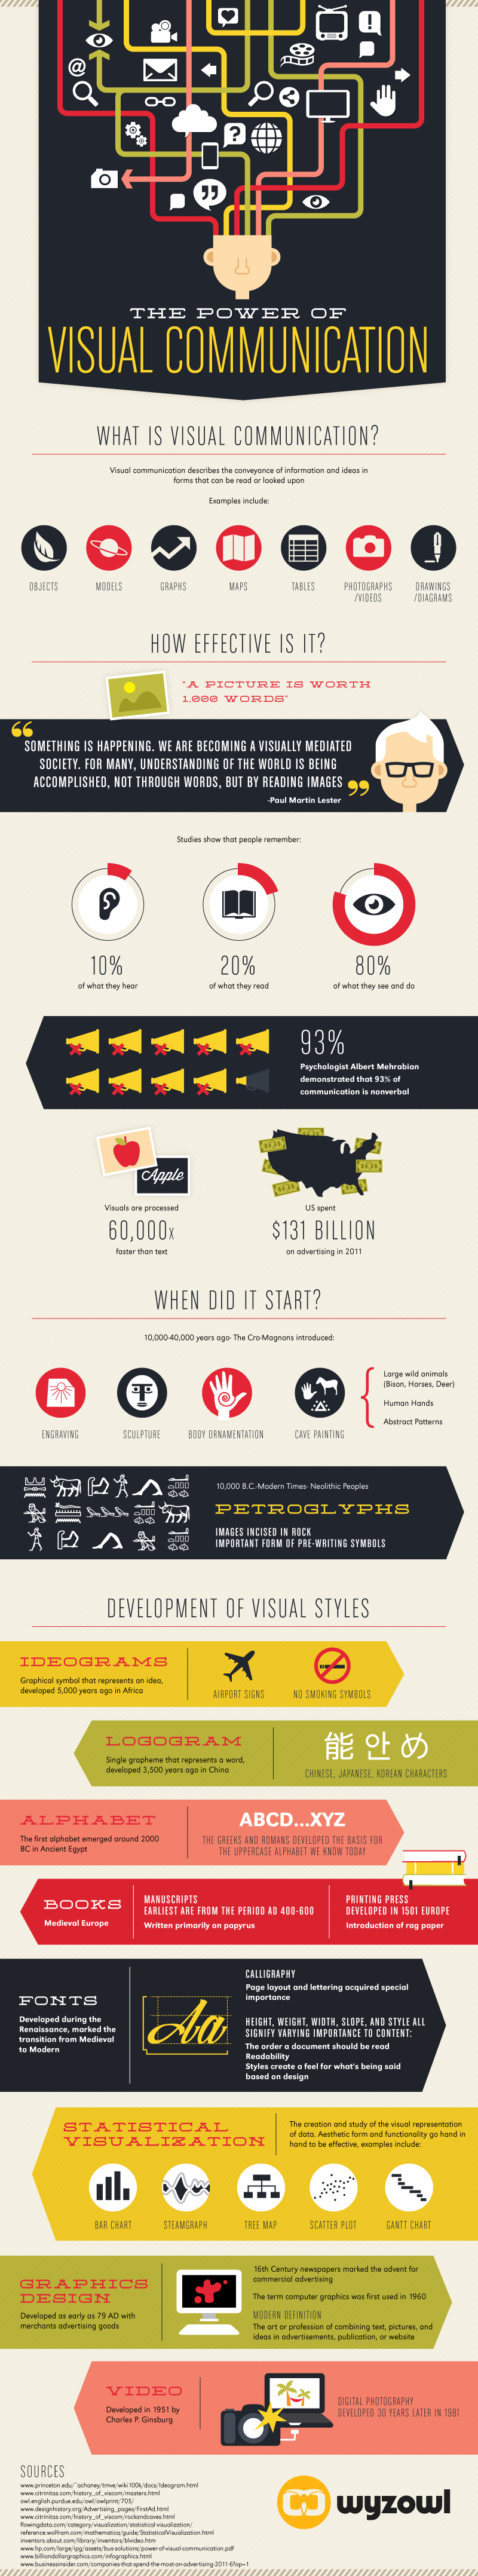 Infographie-278-the-power-of-visual-communication